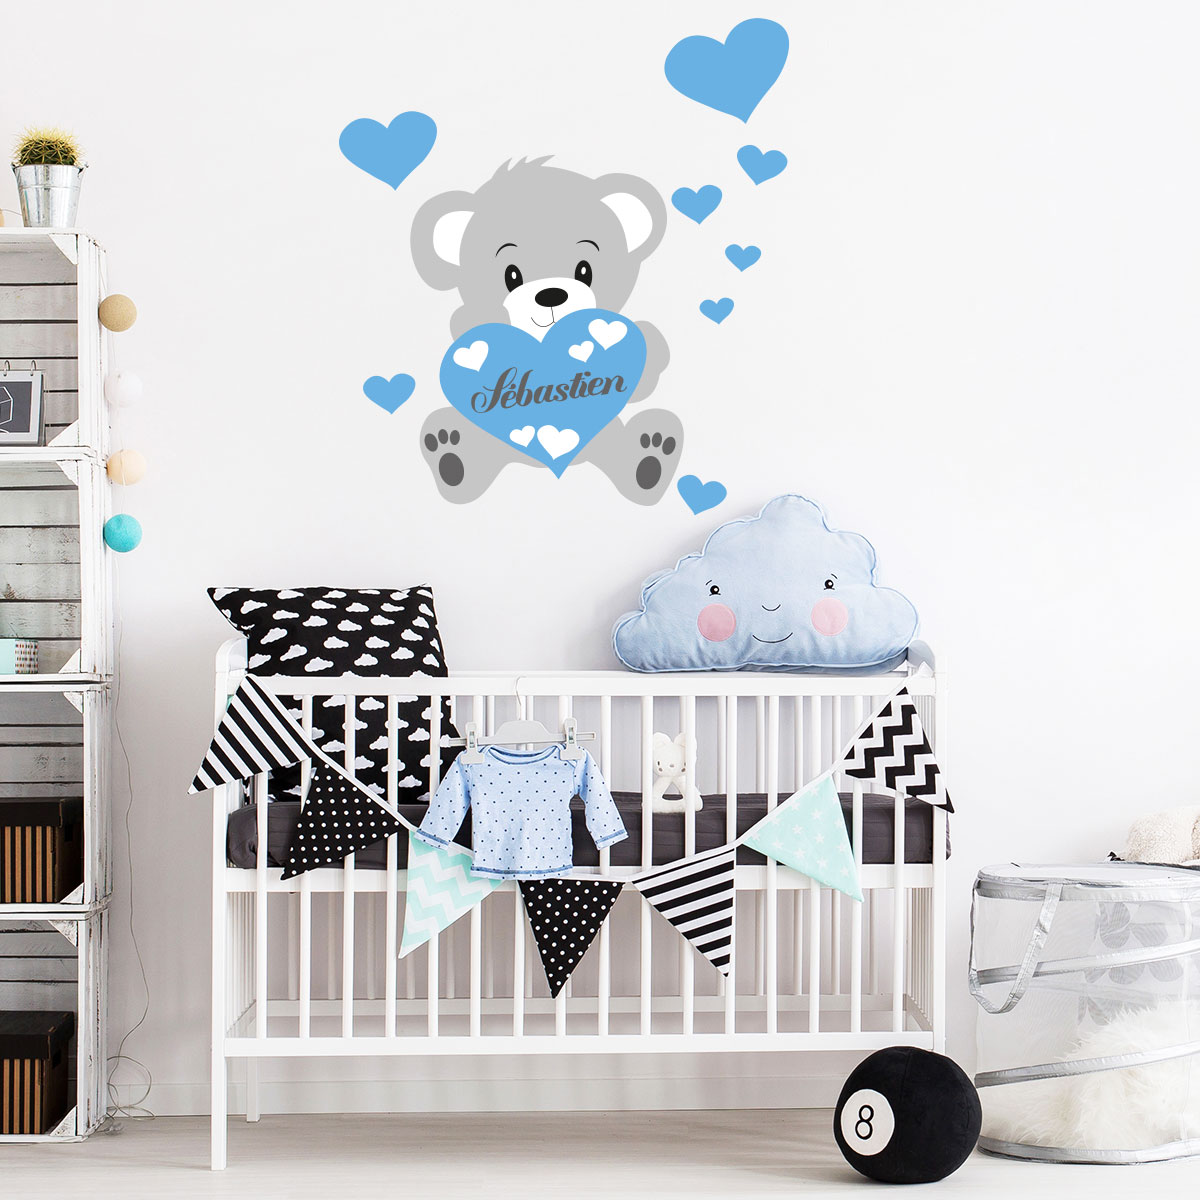 Sticker pr nom personnalis ourson bleu stickers chambre for Stickers ourson chambre bebe